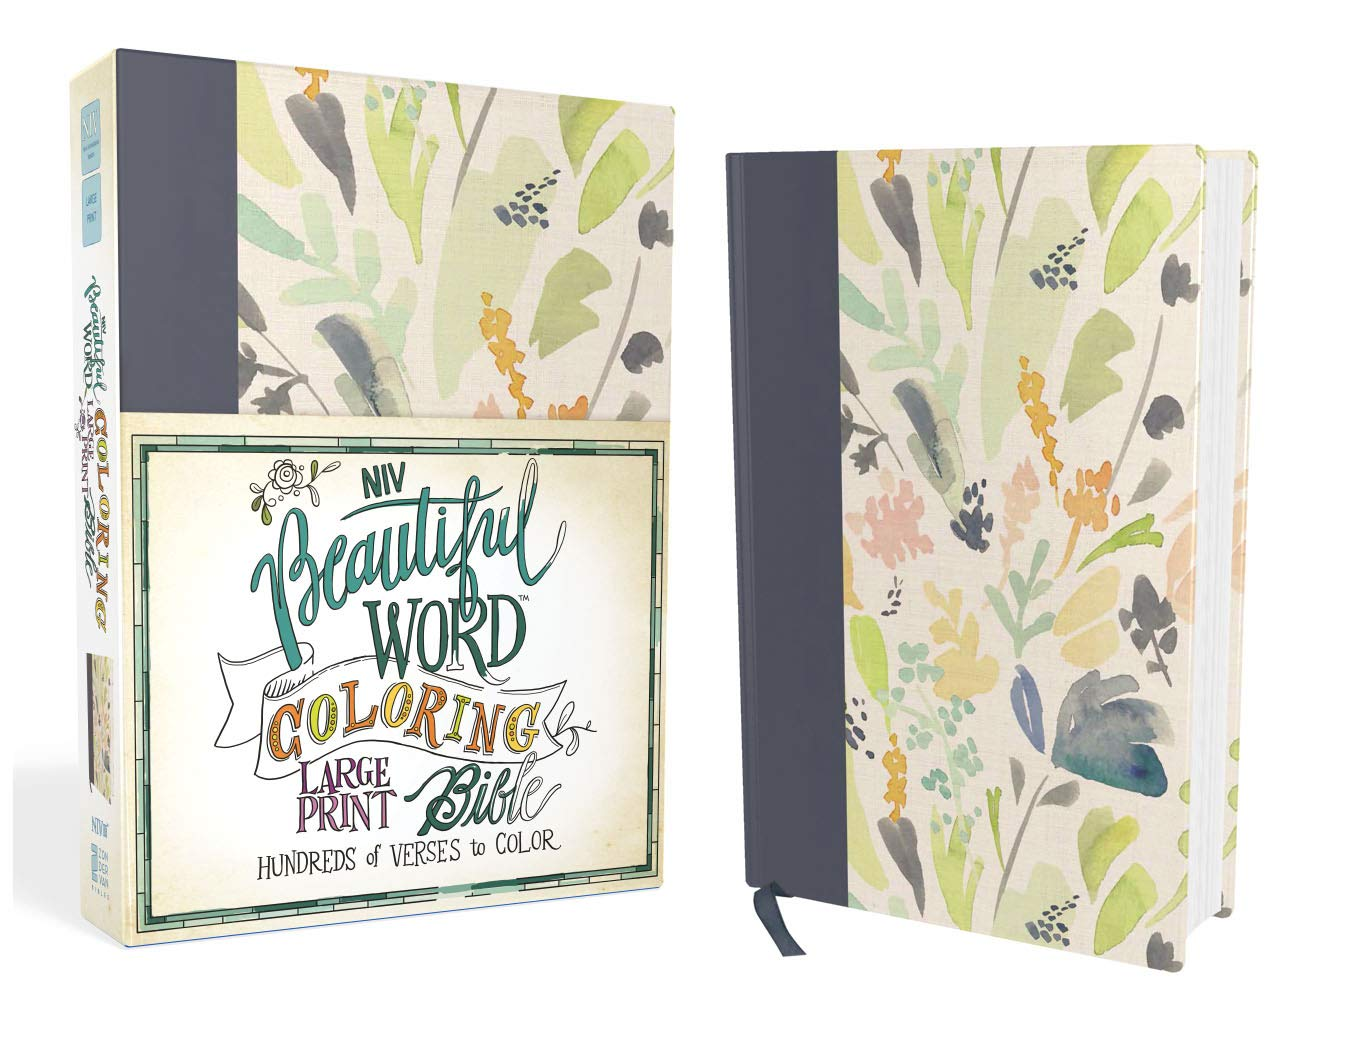 NIV, Beautiful Word Coloring Bible, Large Print, Cloth over Board, Navy by HarperCollins Christian Pub.